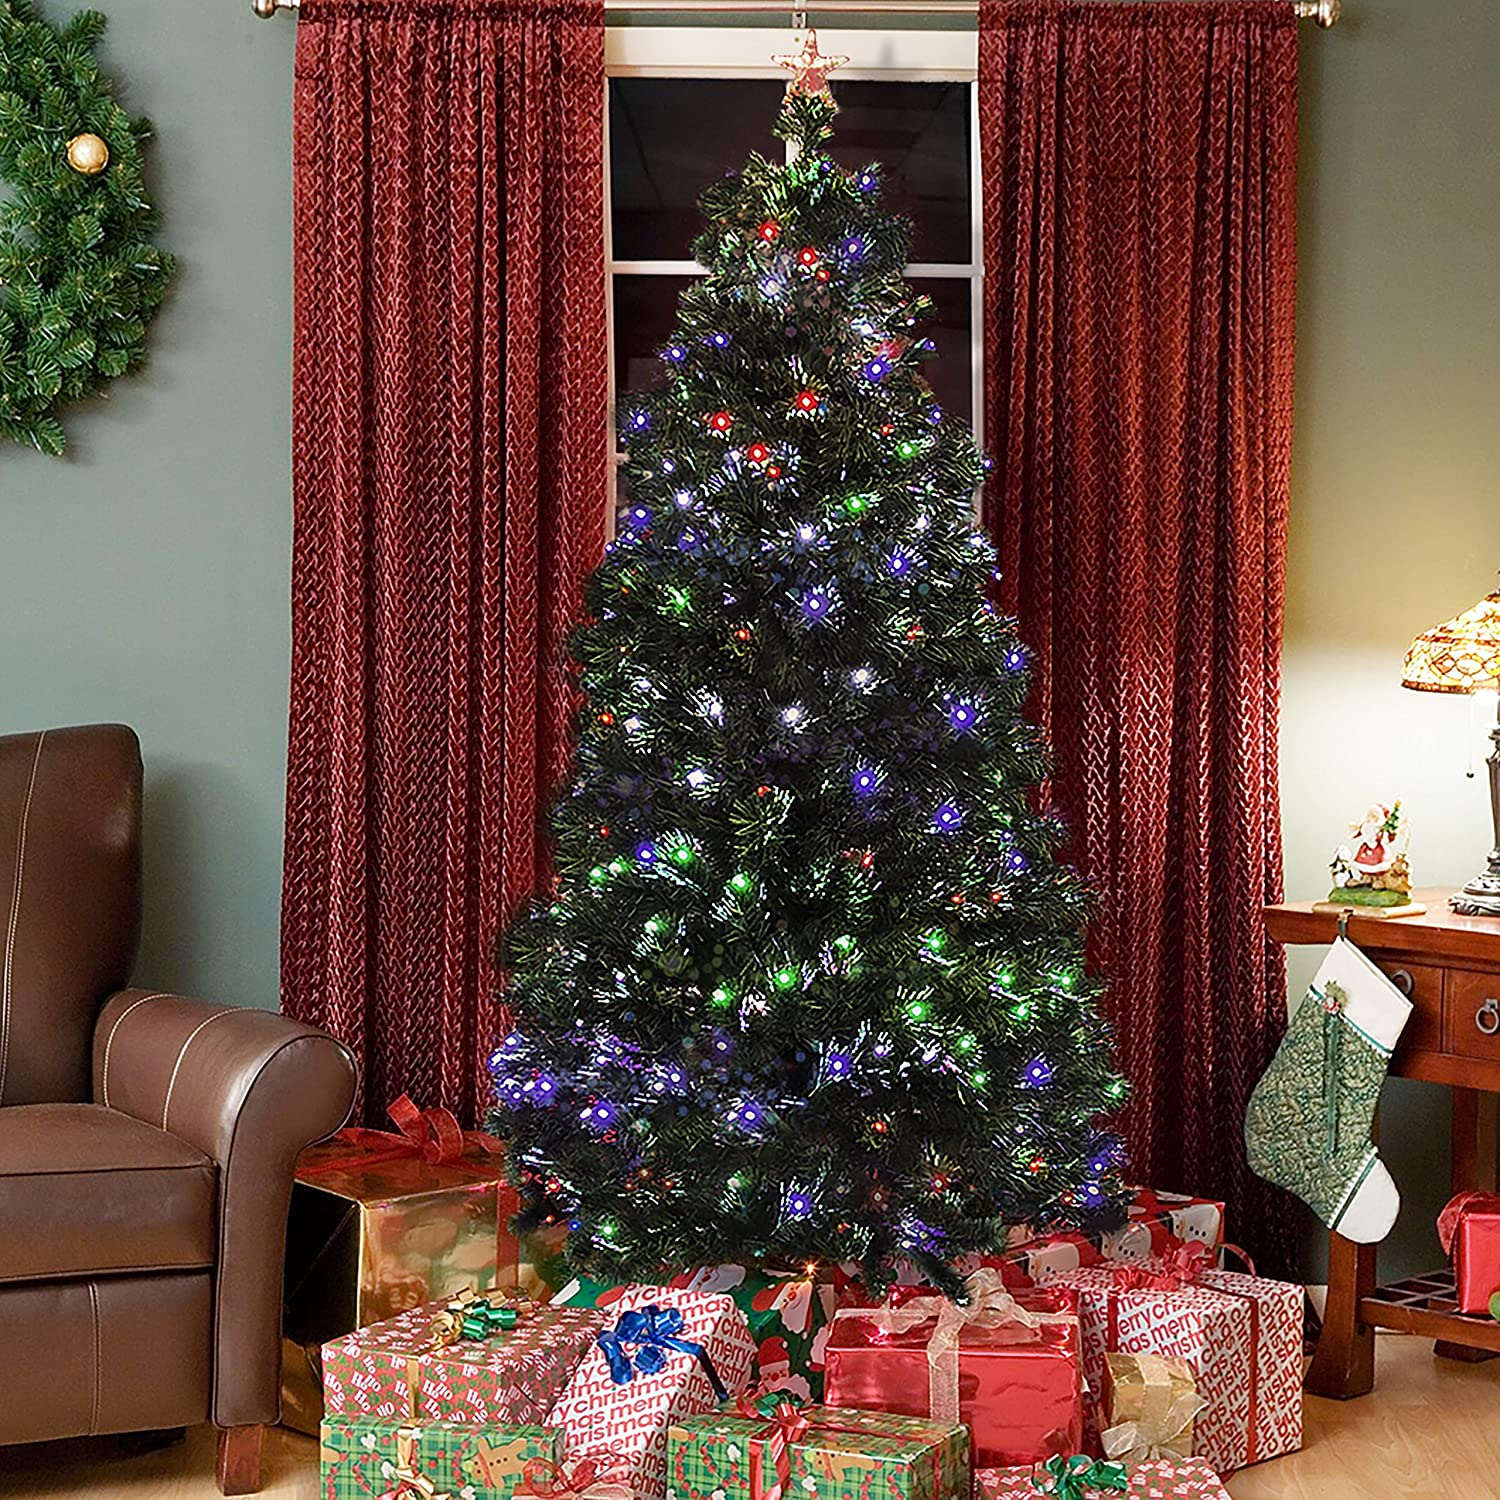 httpsimages nassl images amazoncomimagesia - Christmas Tree Deals